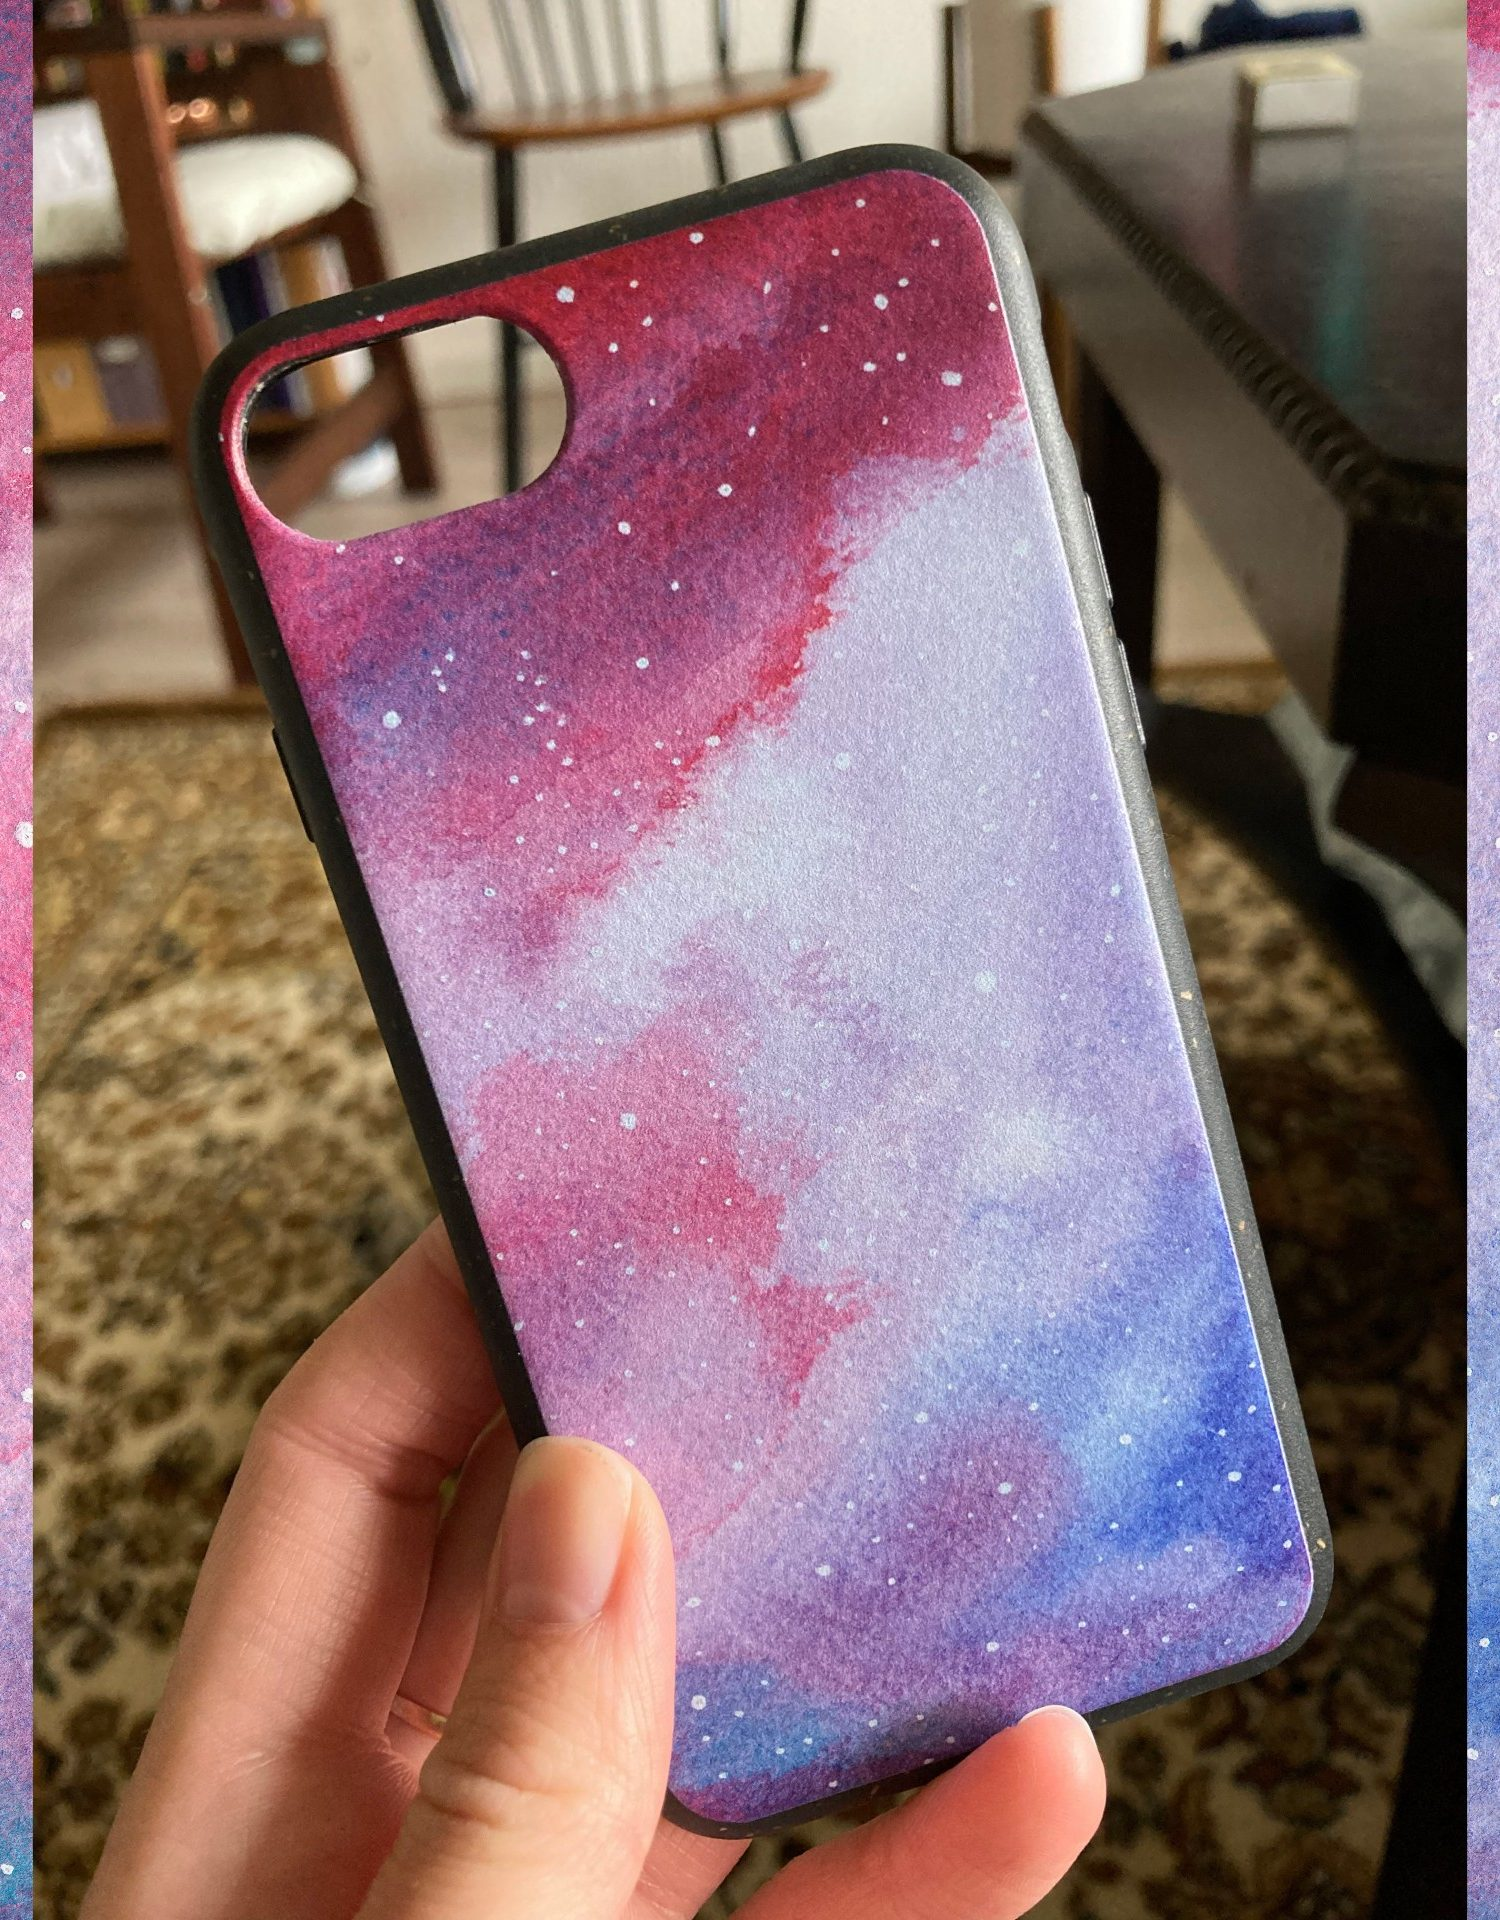 biodegradable case for iPhone with galaxy design